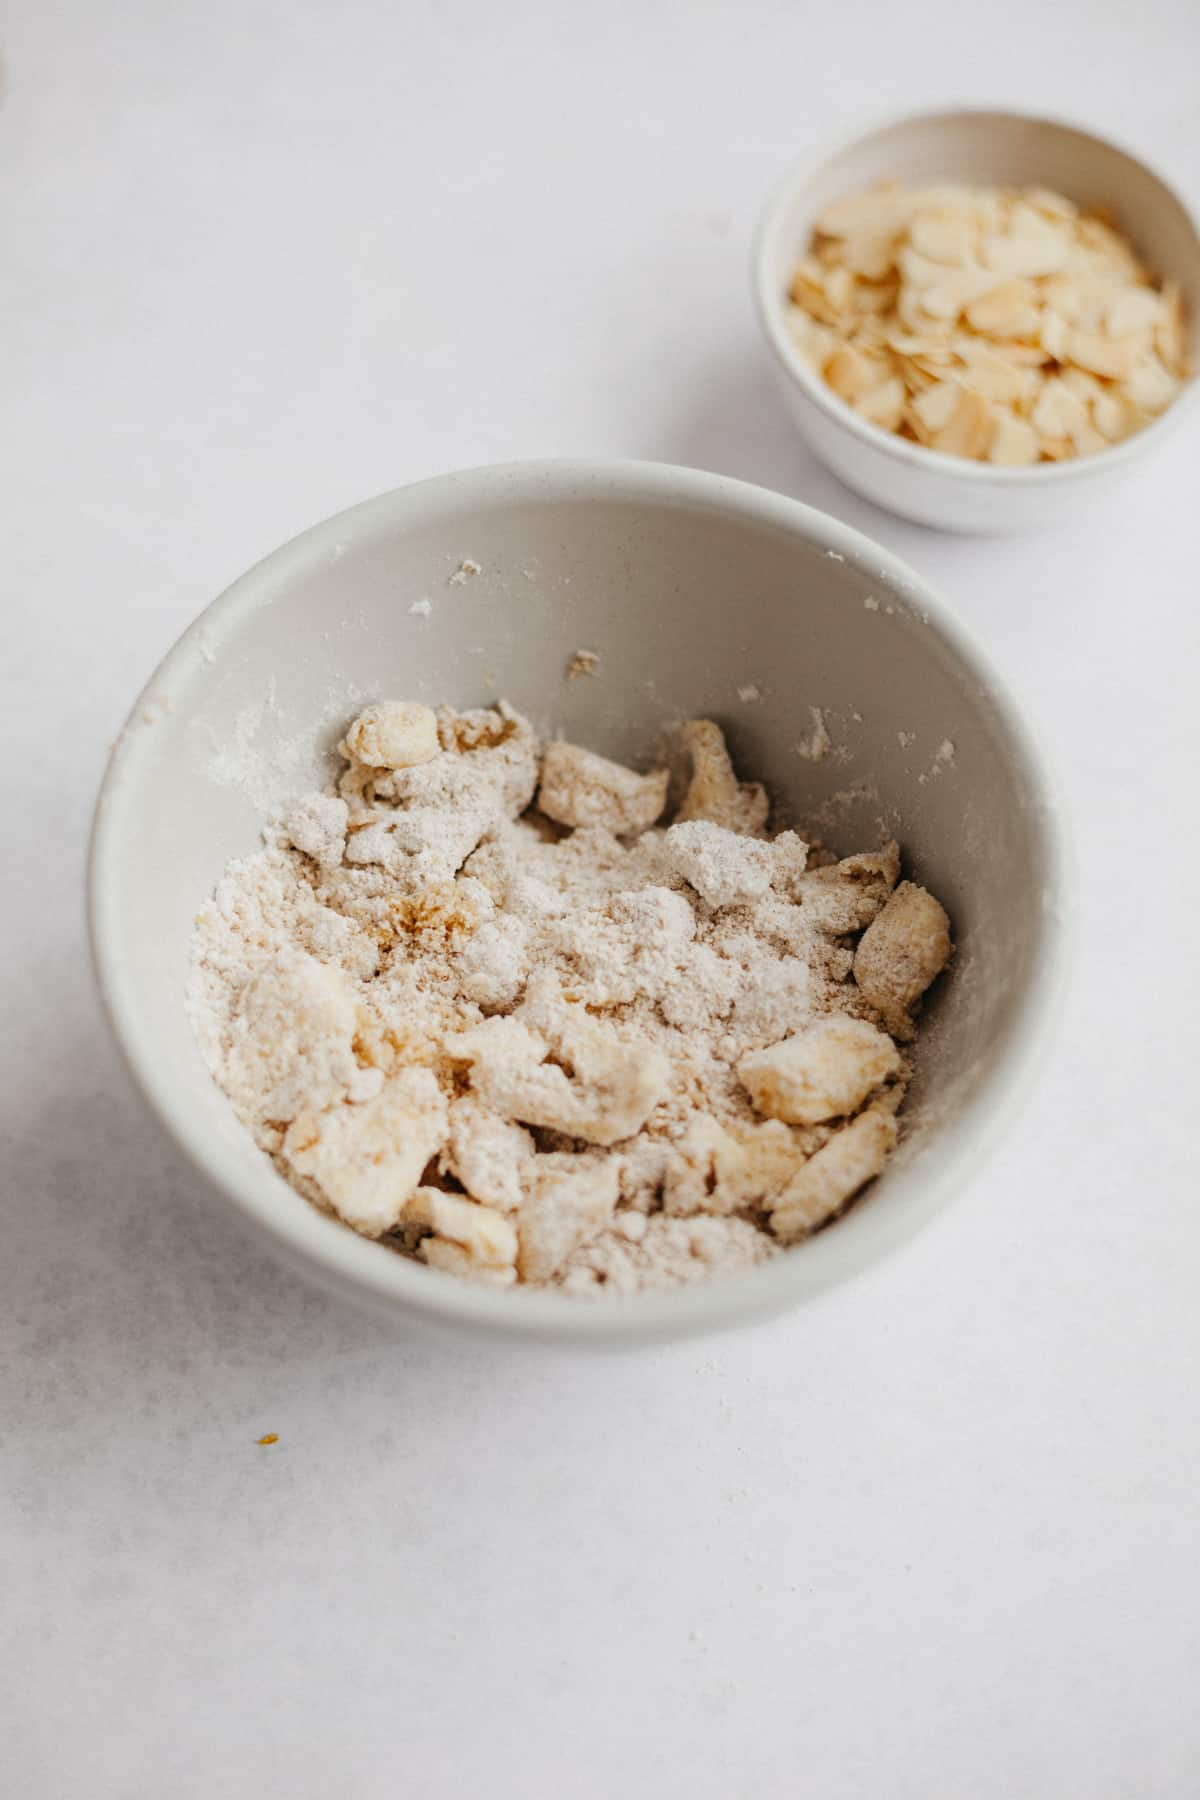 The ingredients for a crumble topping in a small grey bowl